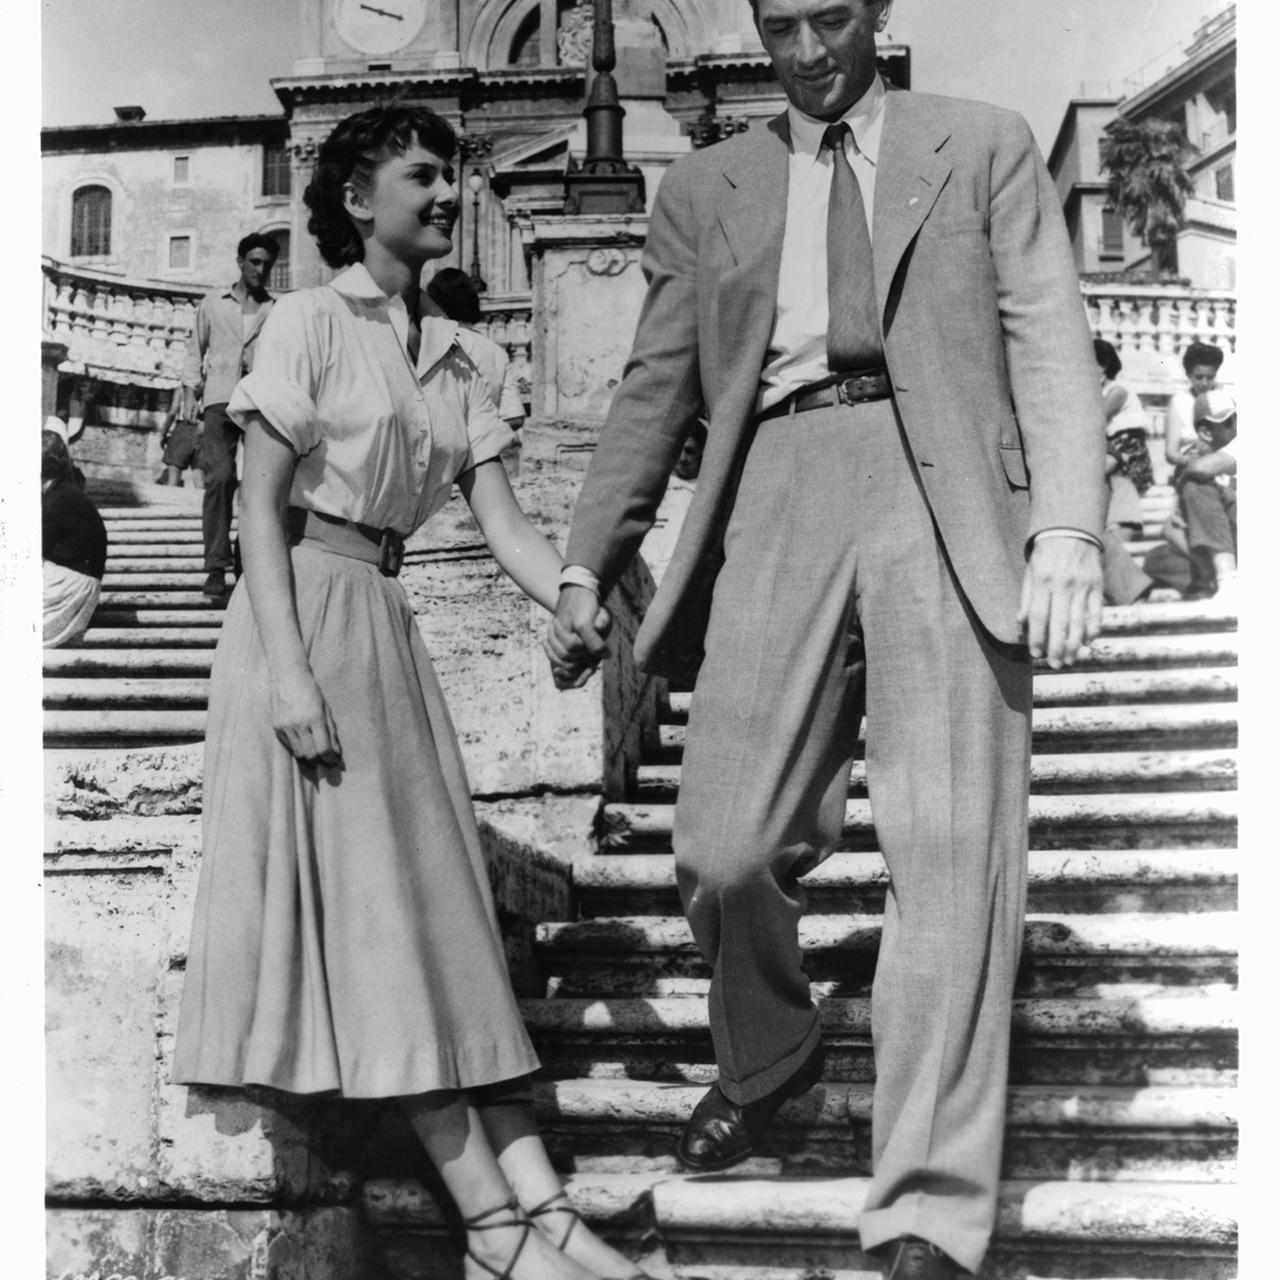 Audrey Hepburn And Gregory Peck In 'Roman Holiday'